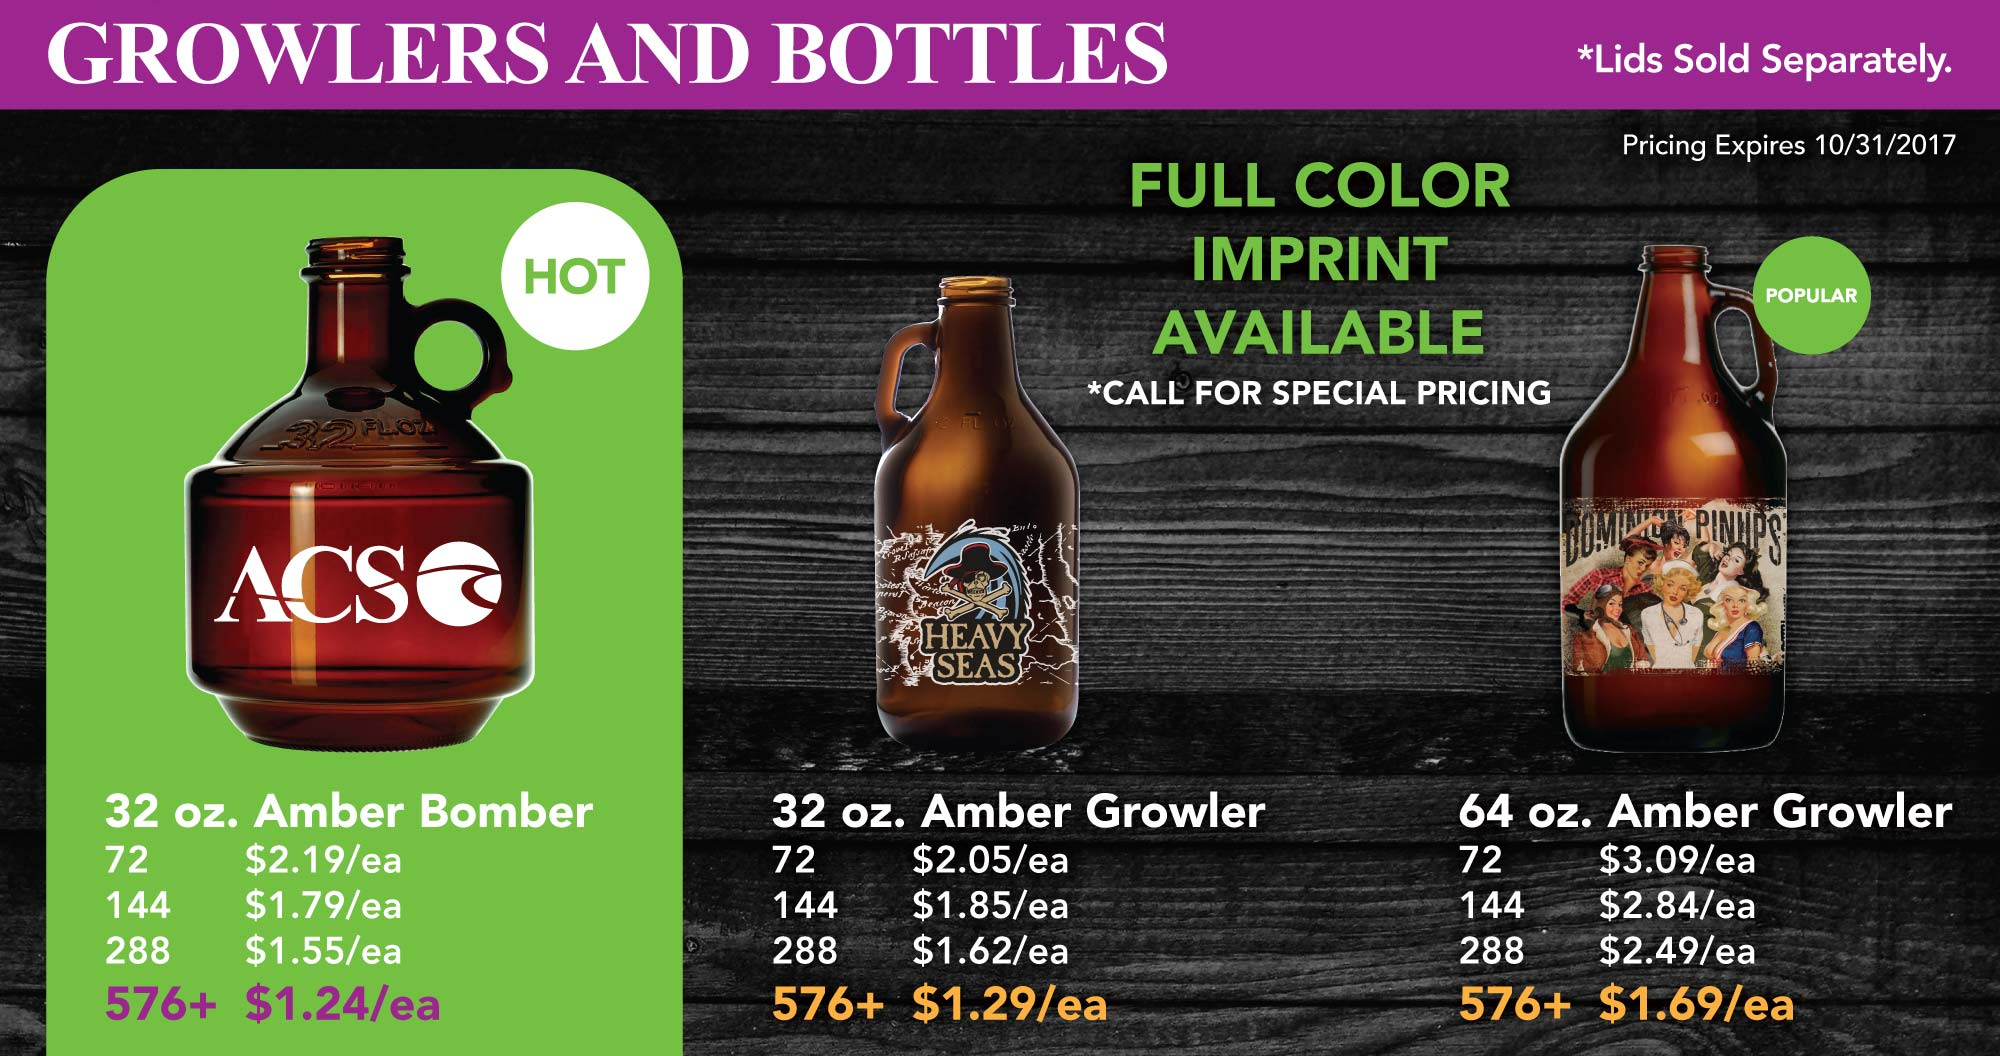 GROWLERS AND BOTTLES